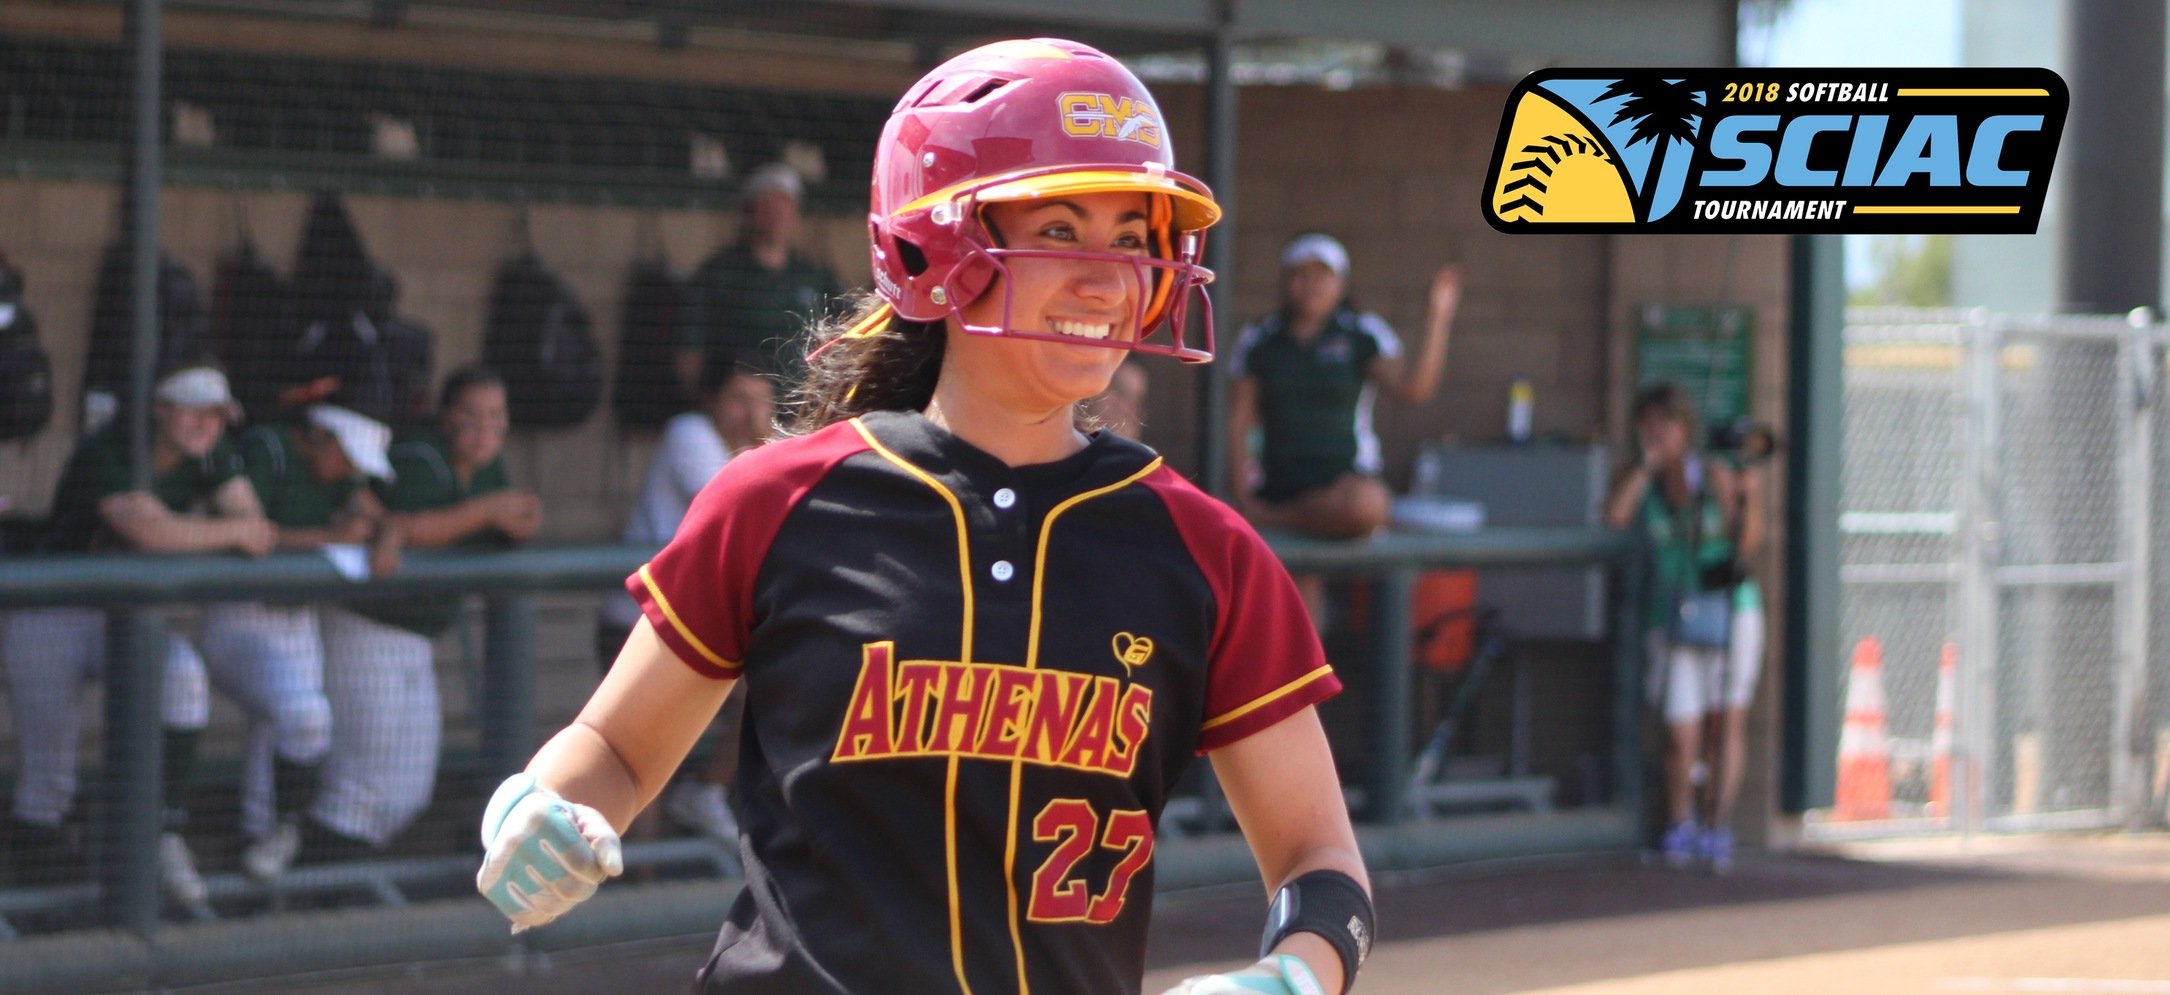 Jessica Fox doubled then scored the game-winning run against La Verne. (photo credit: Alisha Alexander)